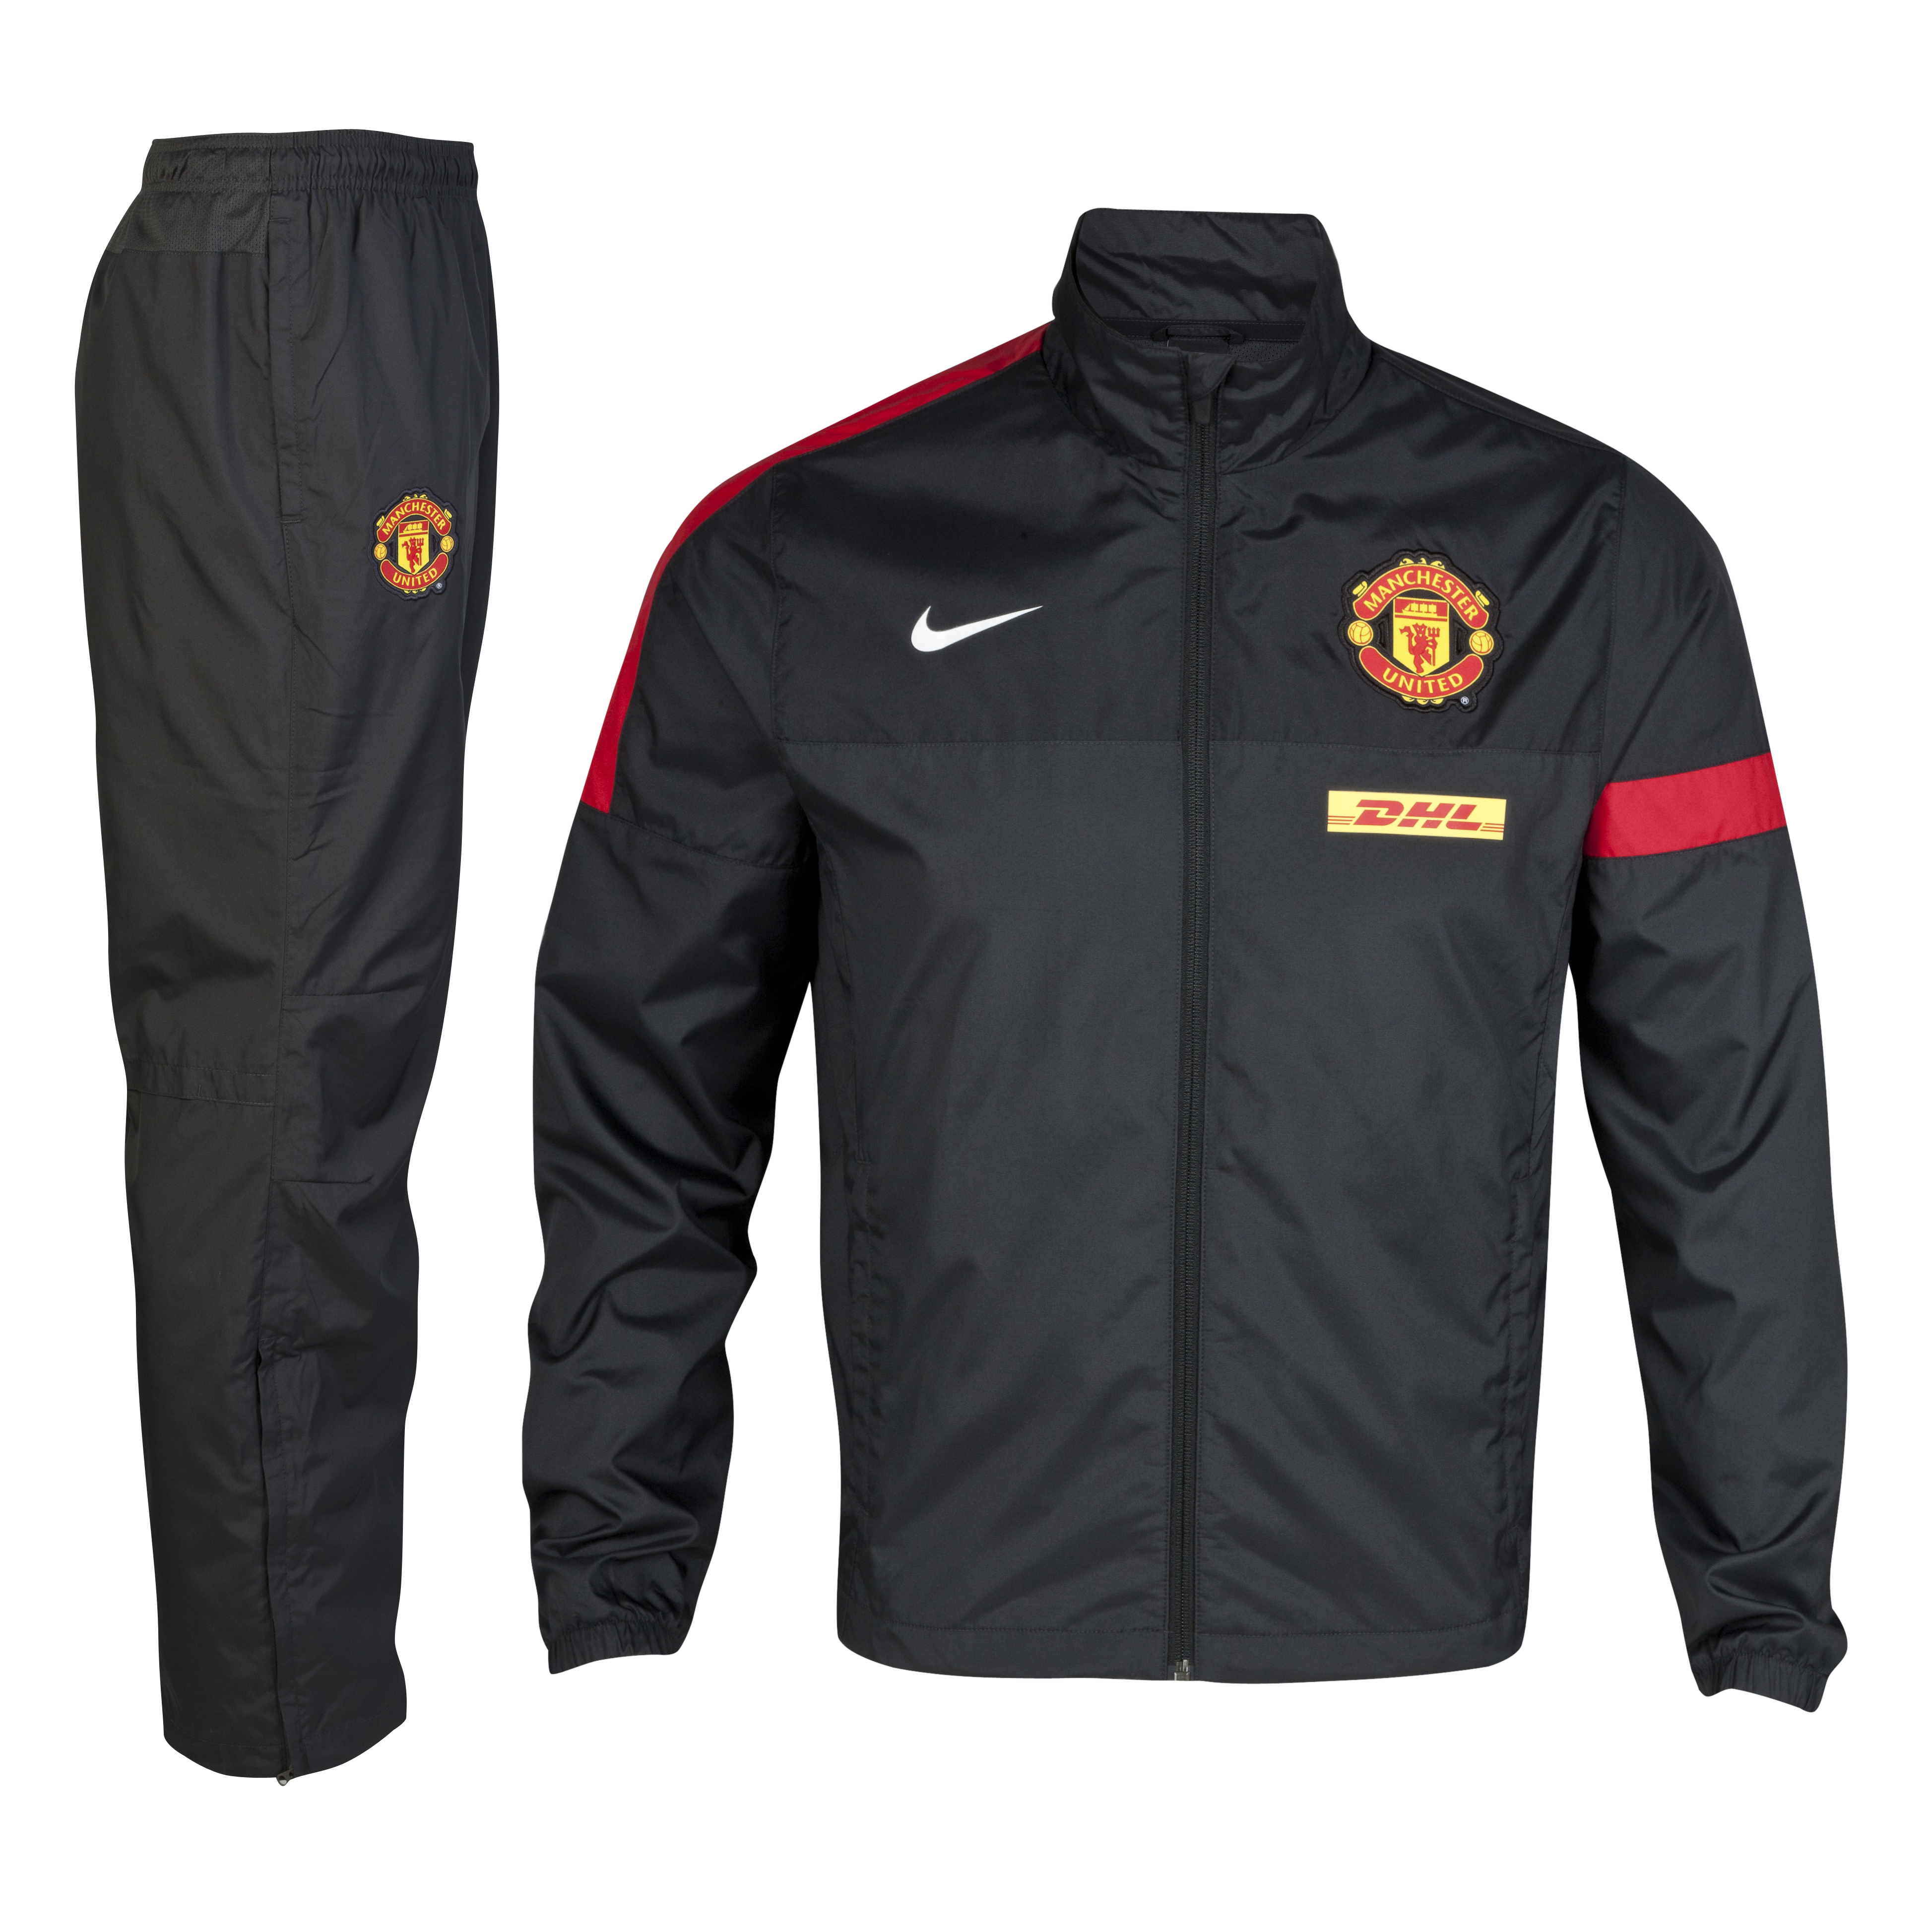 Manchester United Sideline Warm-up Woven Tracksuit - Anthracite/Black/Diablo Red/White - Youths